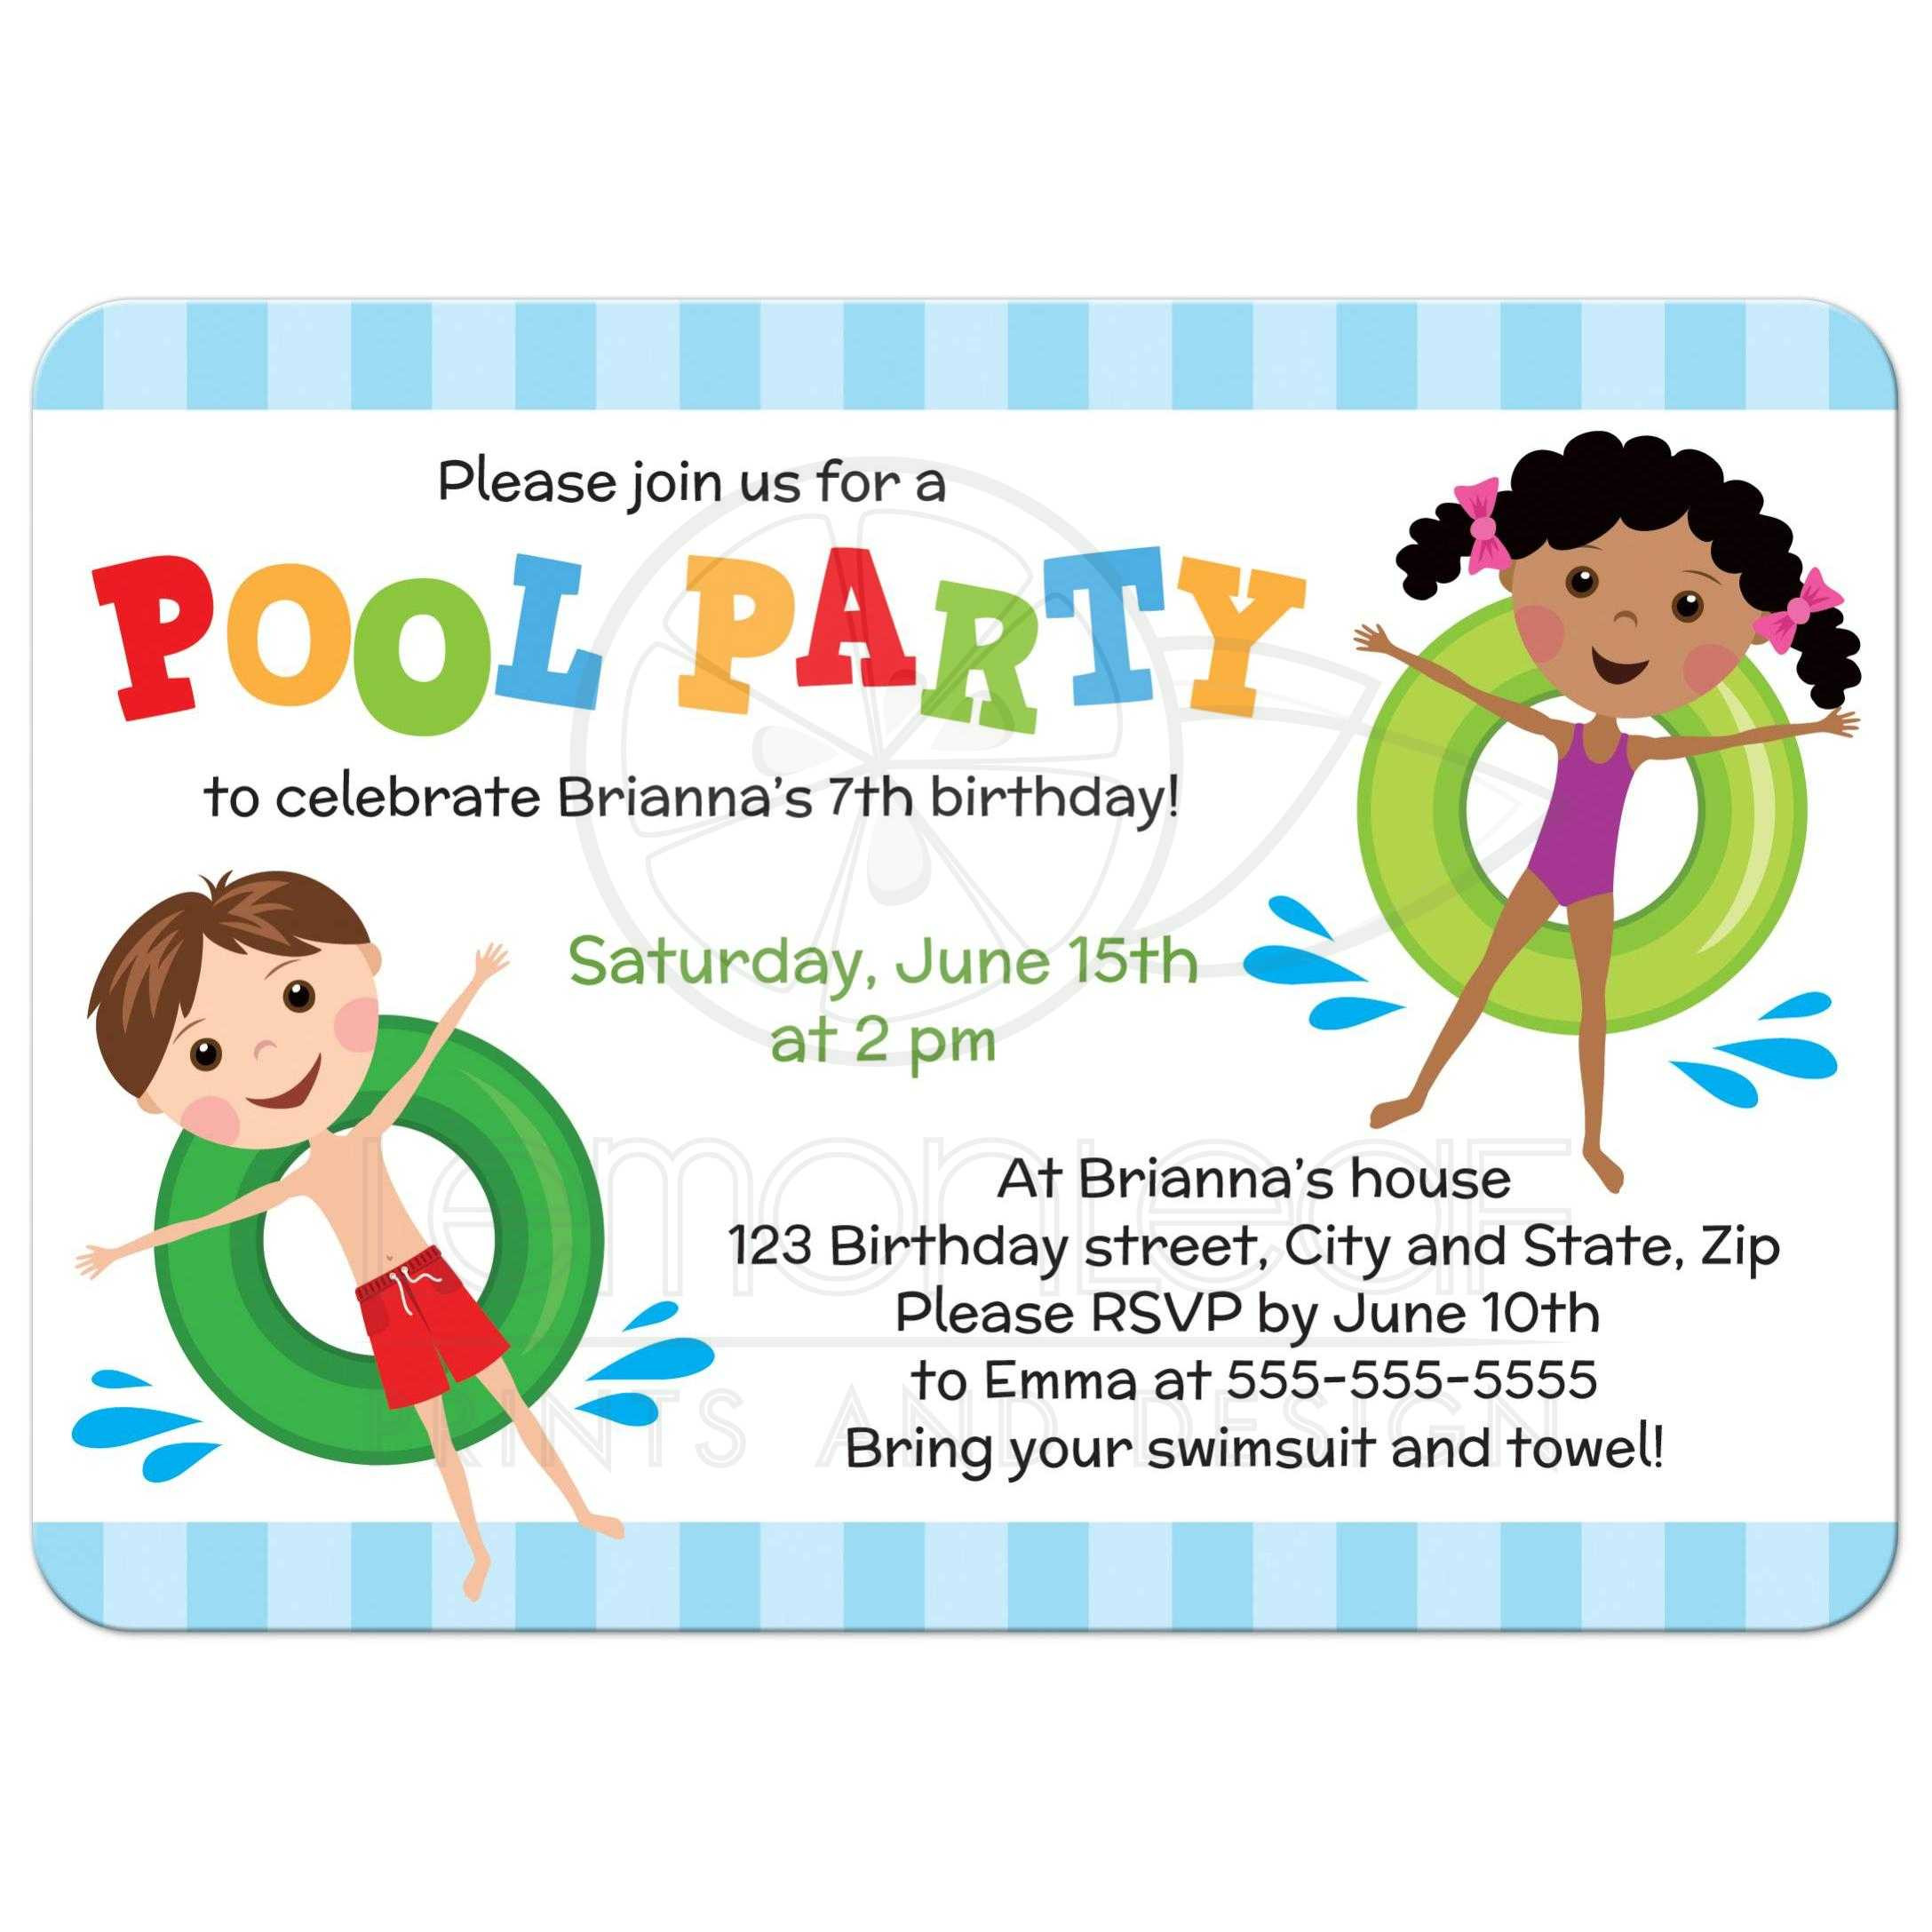 Birthday Party Invitations For Kids  Pool birthday party invitation for kids boy and girl on